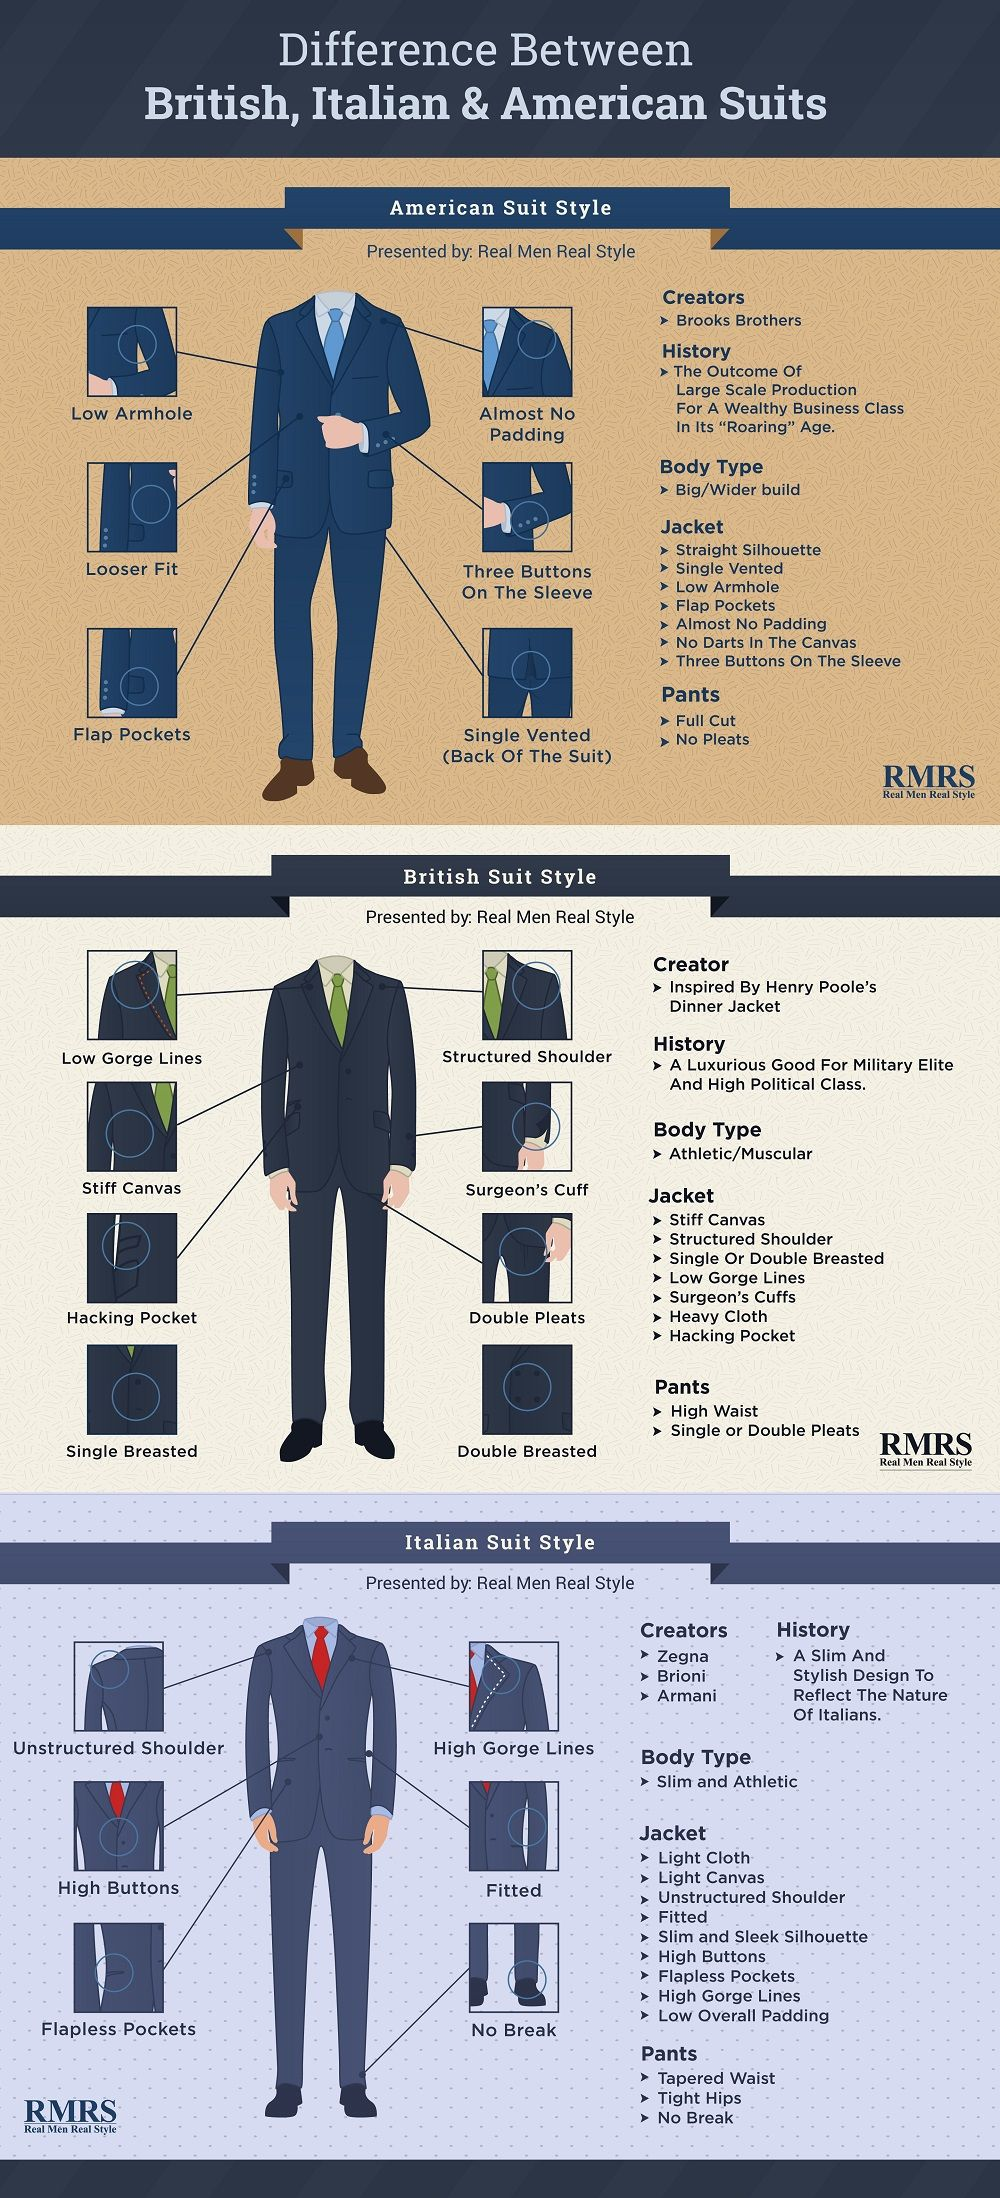 Difference Between British Italian American Suit Styles Windsor Tie Knot Diagram The Suits